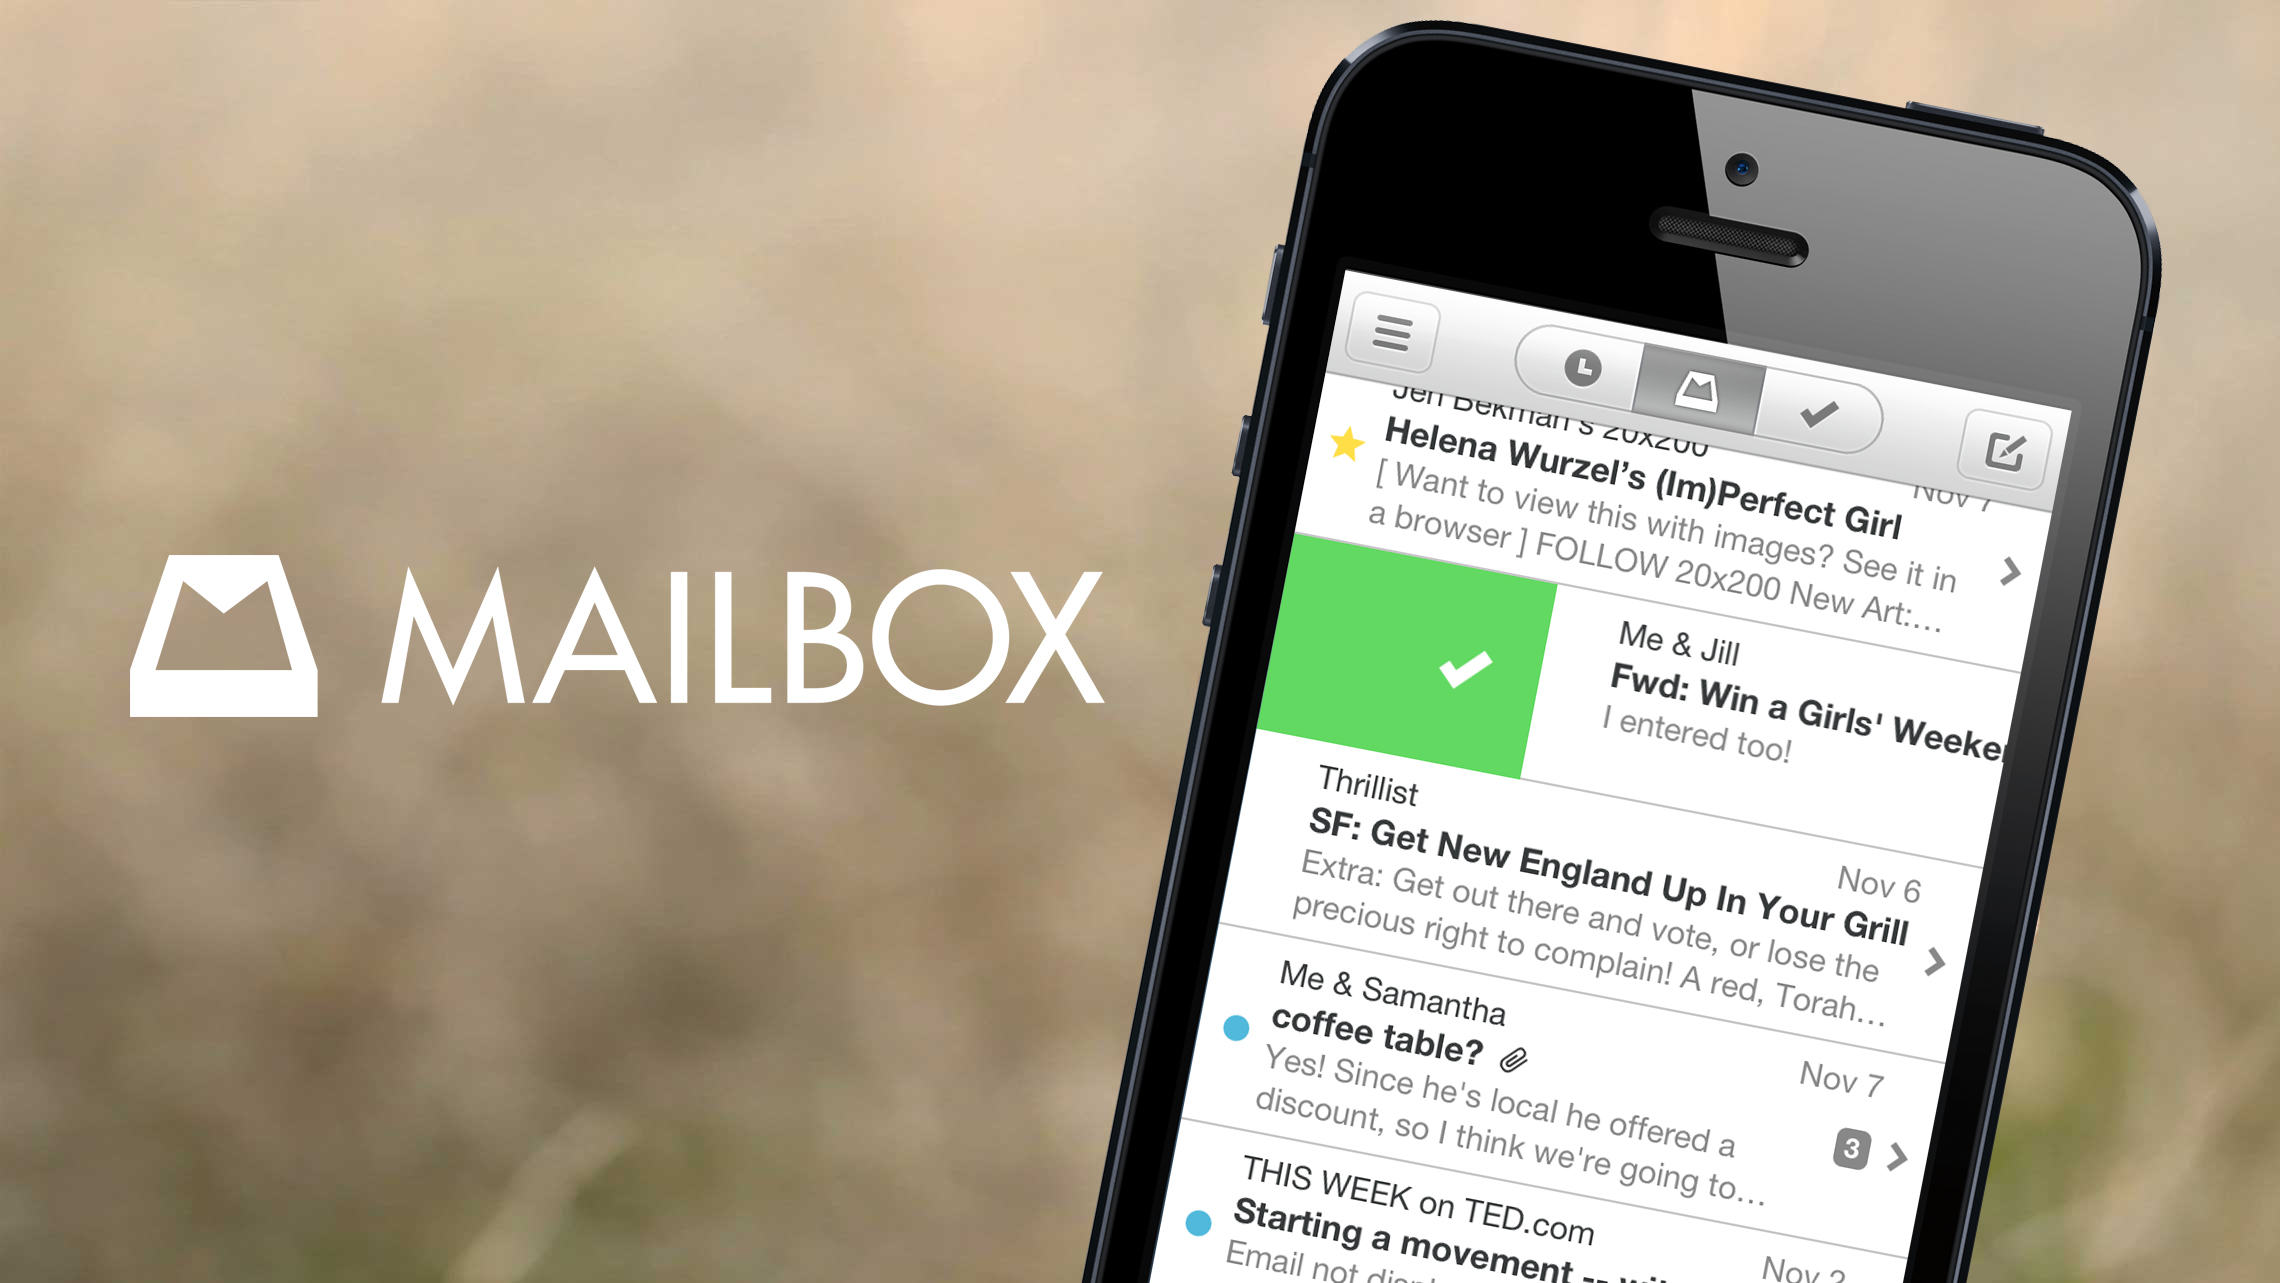 Mailbox – iOS (iPhone, iPod touch)